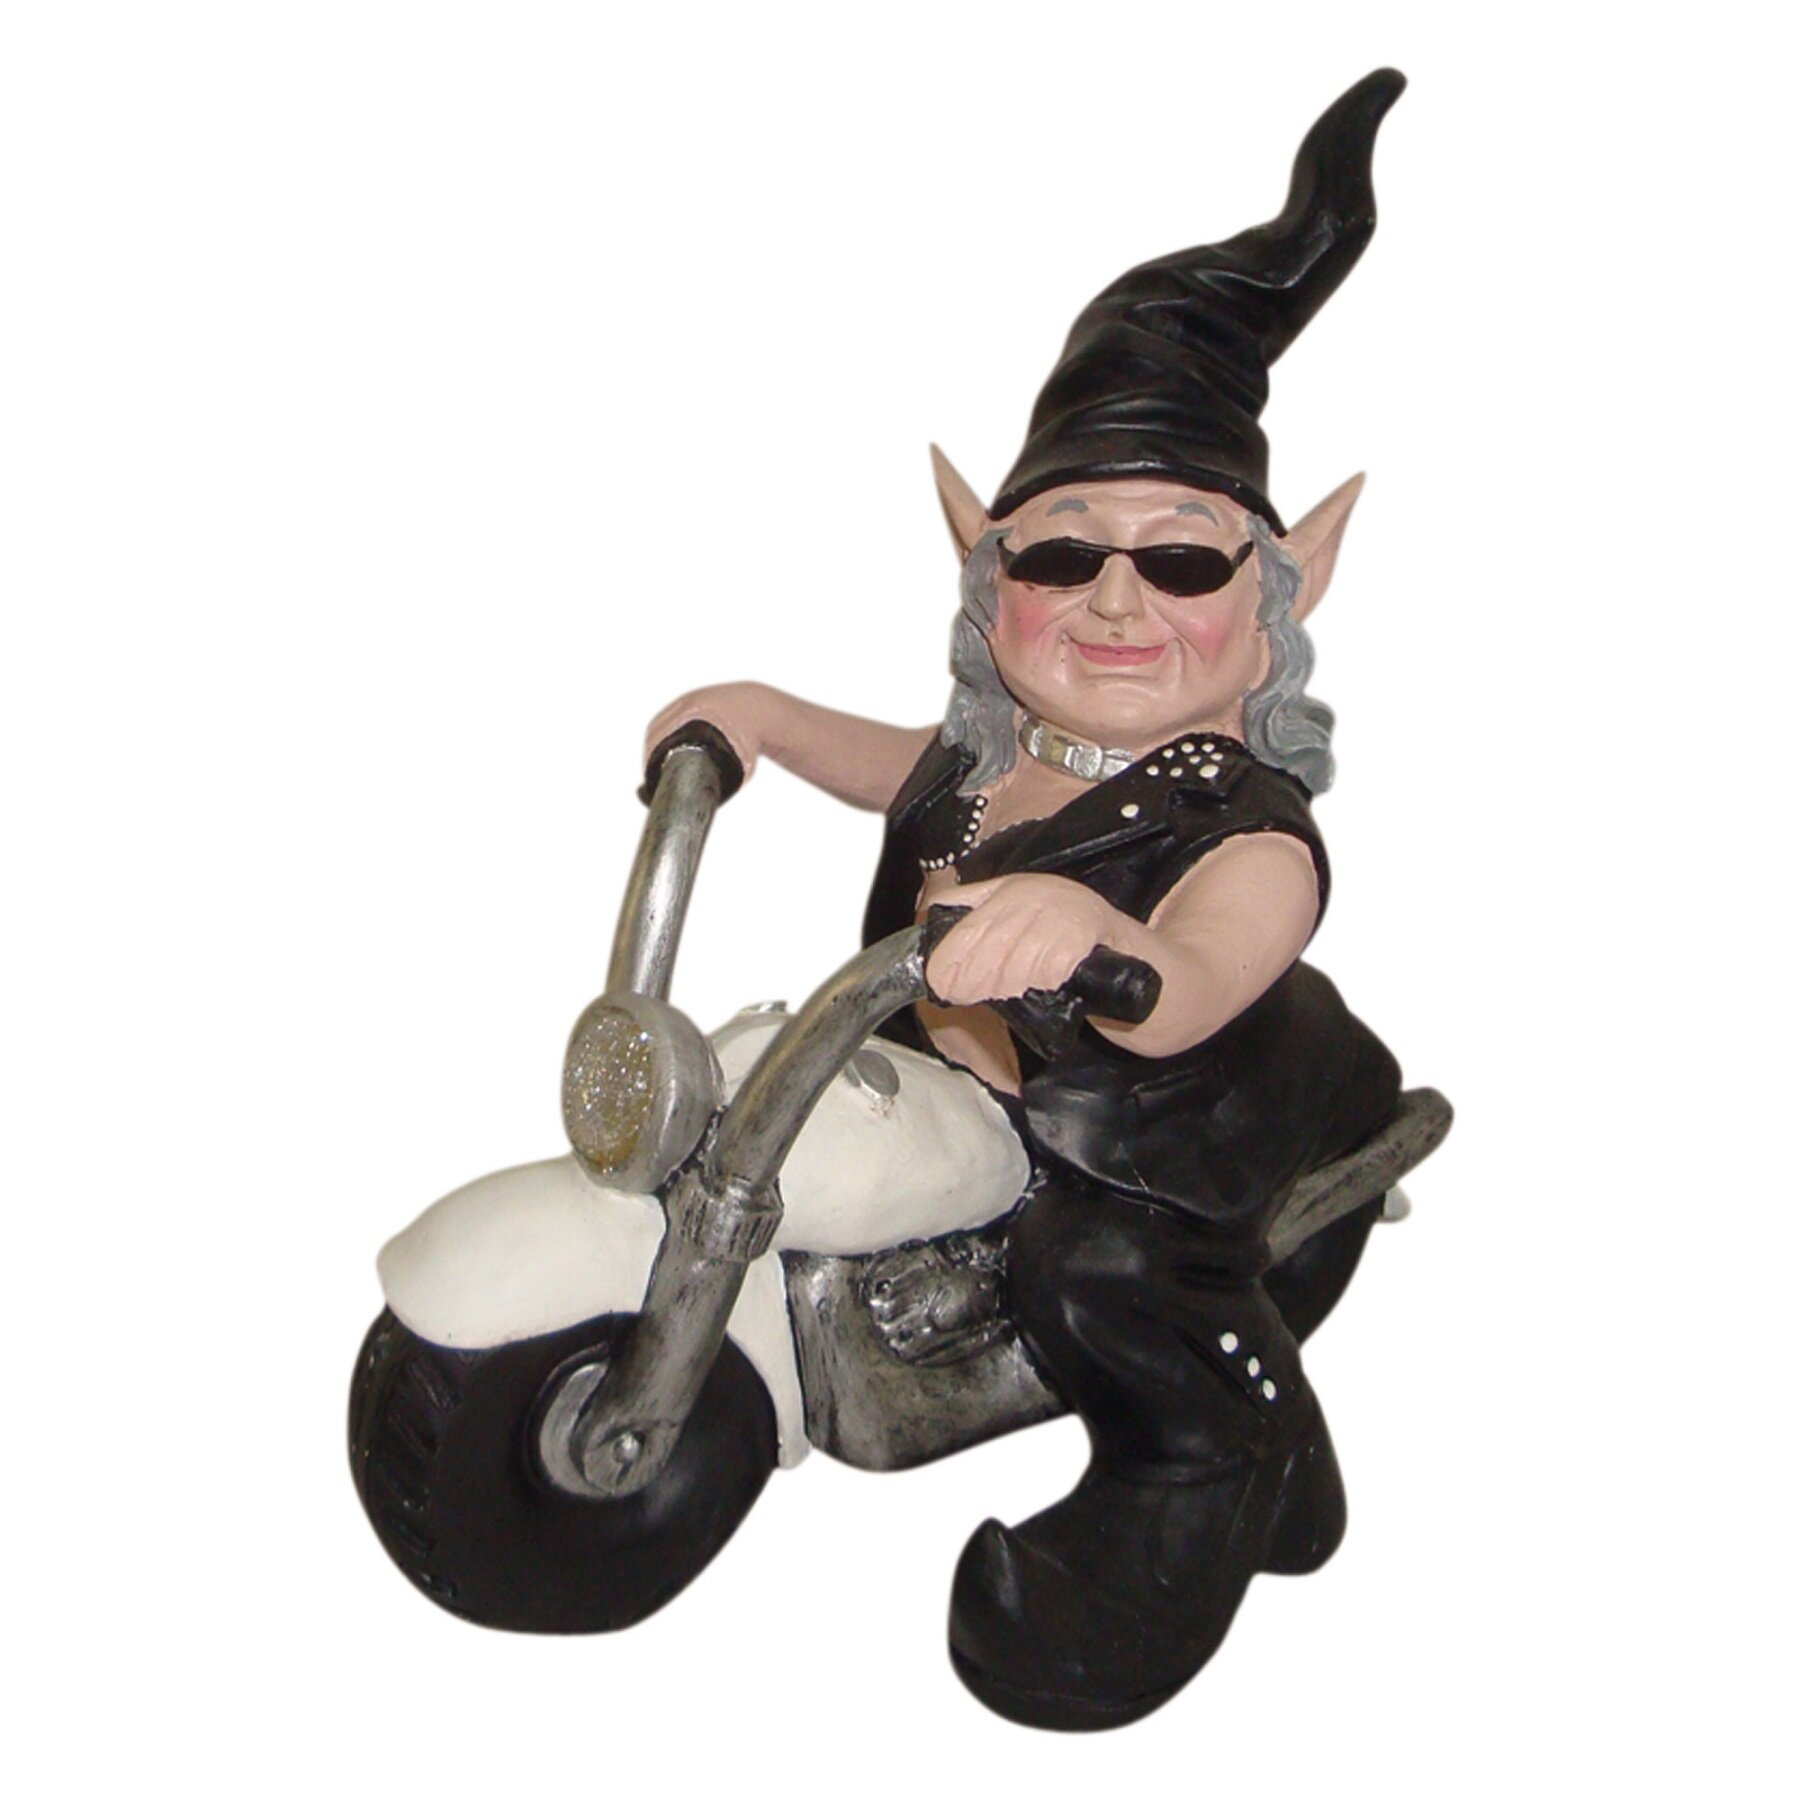 Motorcycle babe images Homestyles Nowaday Gnomes Born To Ride Biker Babe The Gnome In Full Leather Motorcycle Gear Riding Her White Bike Statue Reviews Wayfair